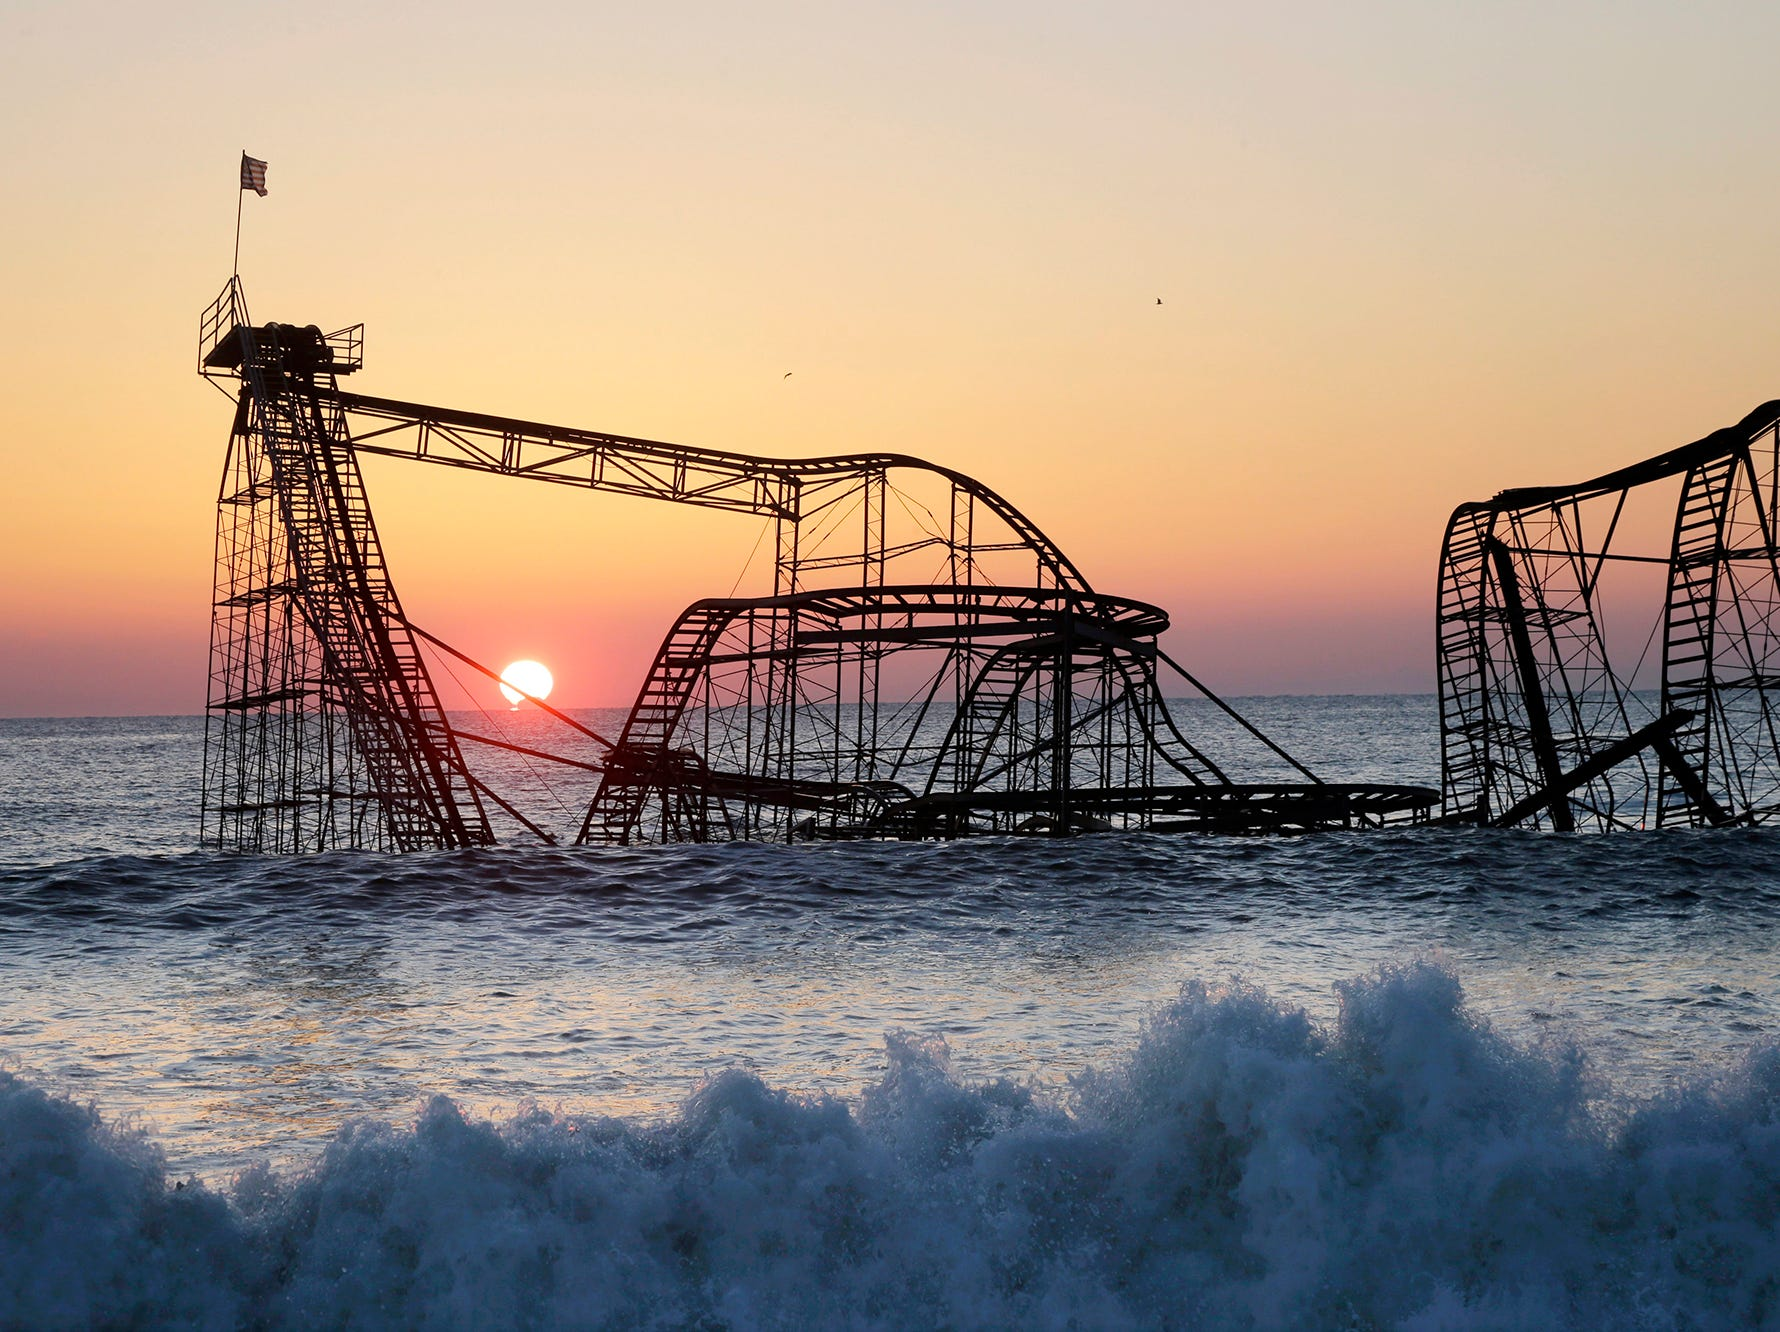 In a Feb. 25, 2013 file photo, the sun rises in Seaside Heights, N.J., behind the Jet Star Roller Coaster which has been sitting in the ocean after part of the Funtown Pier was destroyed during Superstorm Sandy. Work is expected to start Tuesday afternoon, May 14, 2013 to remove the Jet Star coaster from the surf in Seaside Heights.